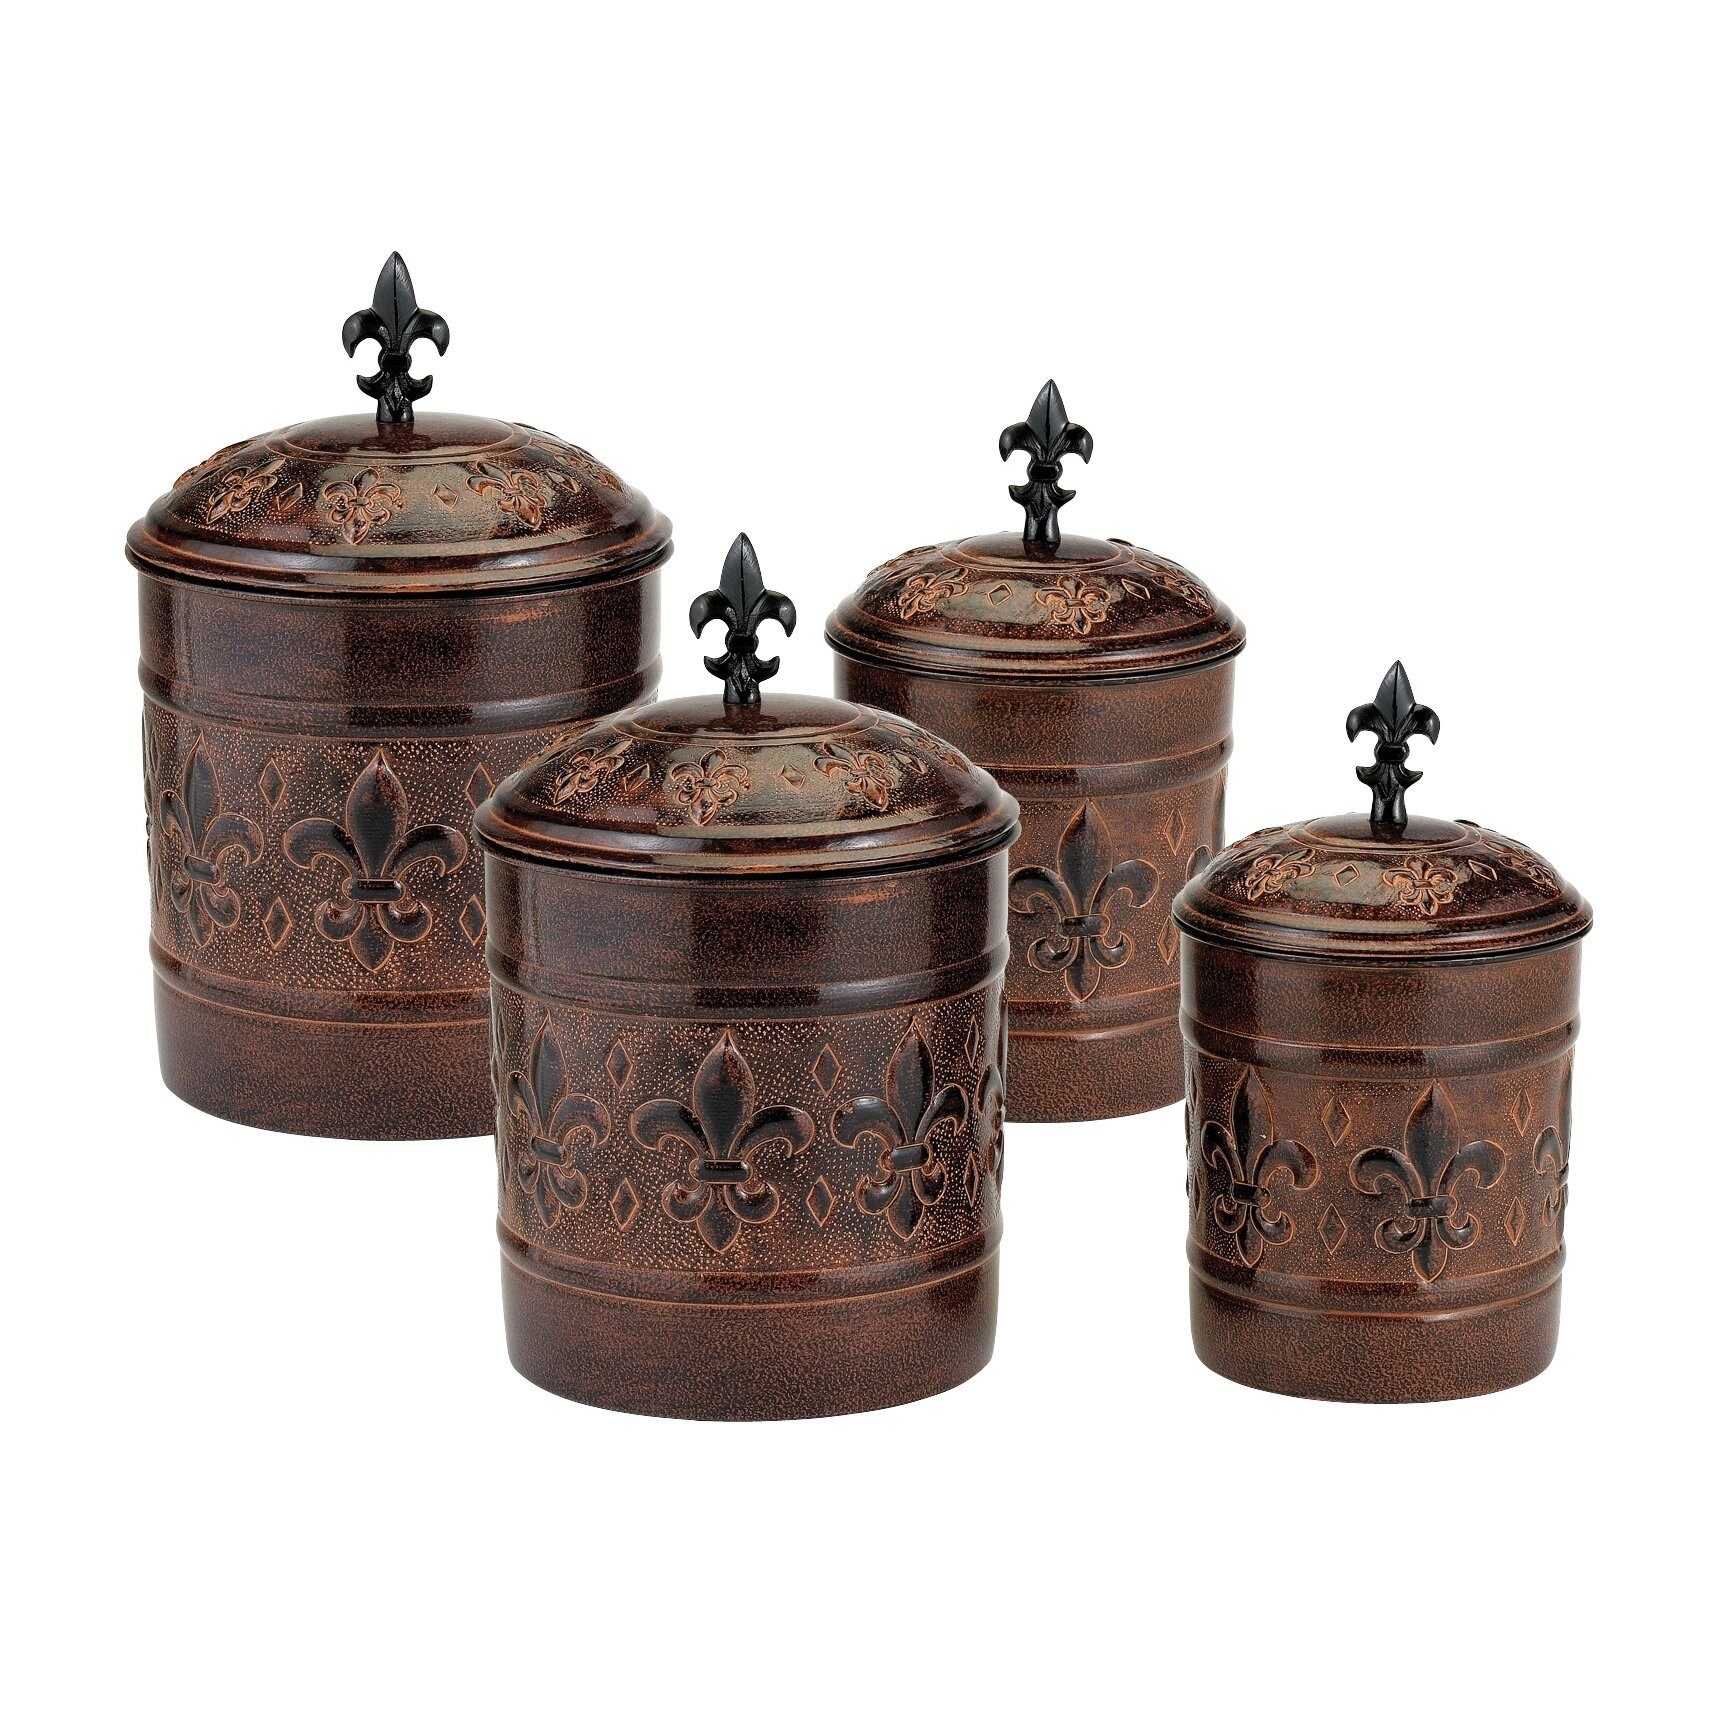 surprising Cool Kitchen Canisters Part - 11: Unique Kitchen Canisters Sets - Ideas on Foter